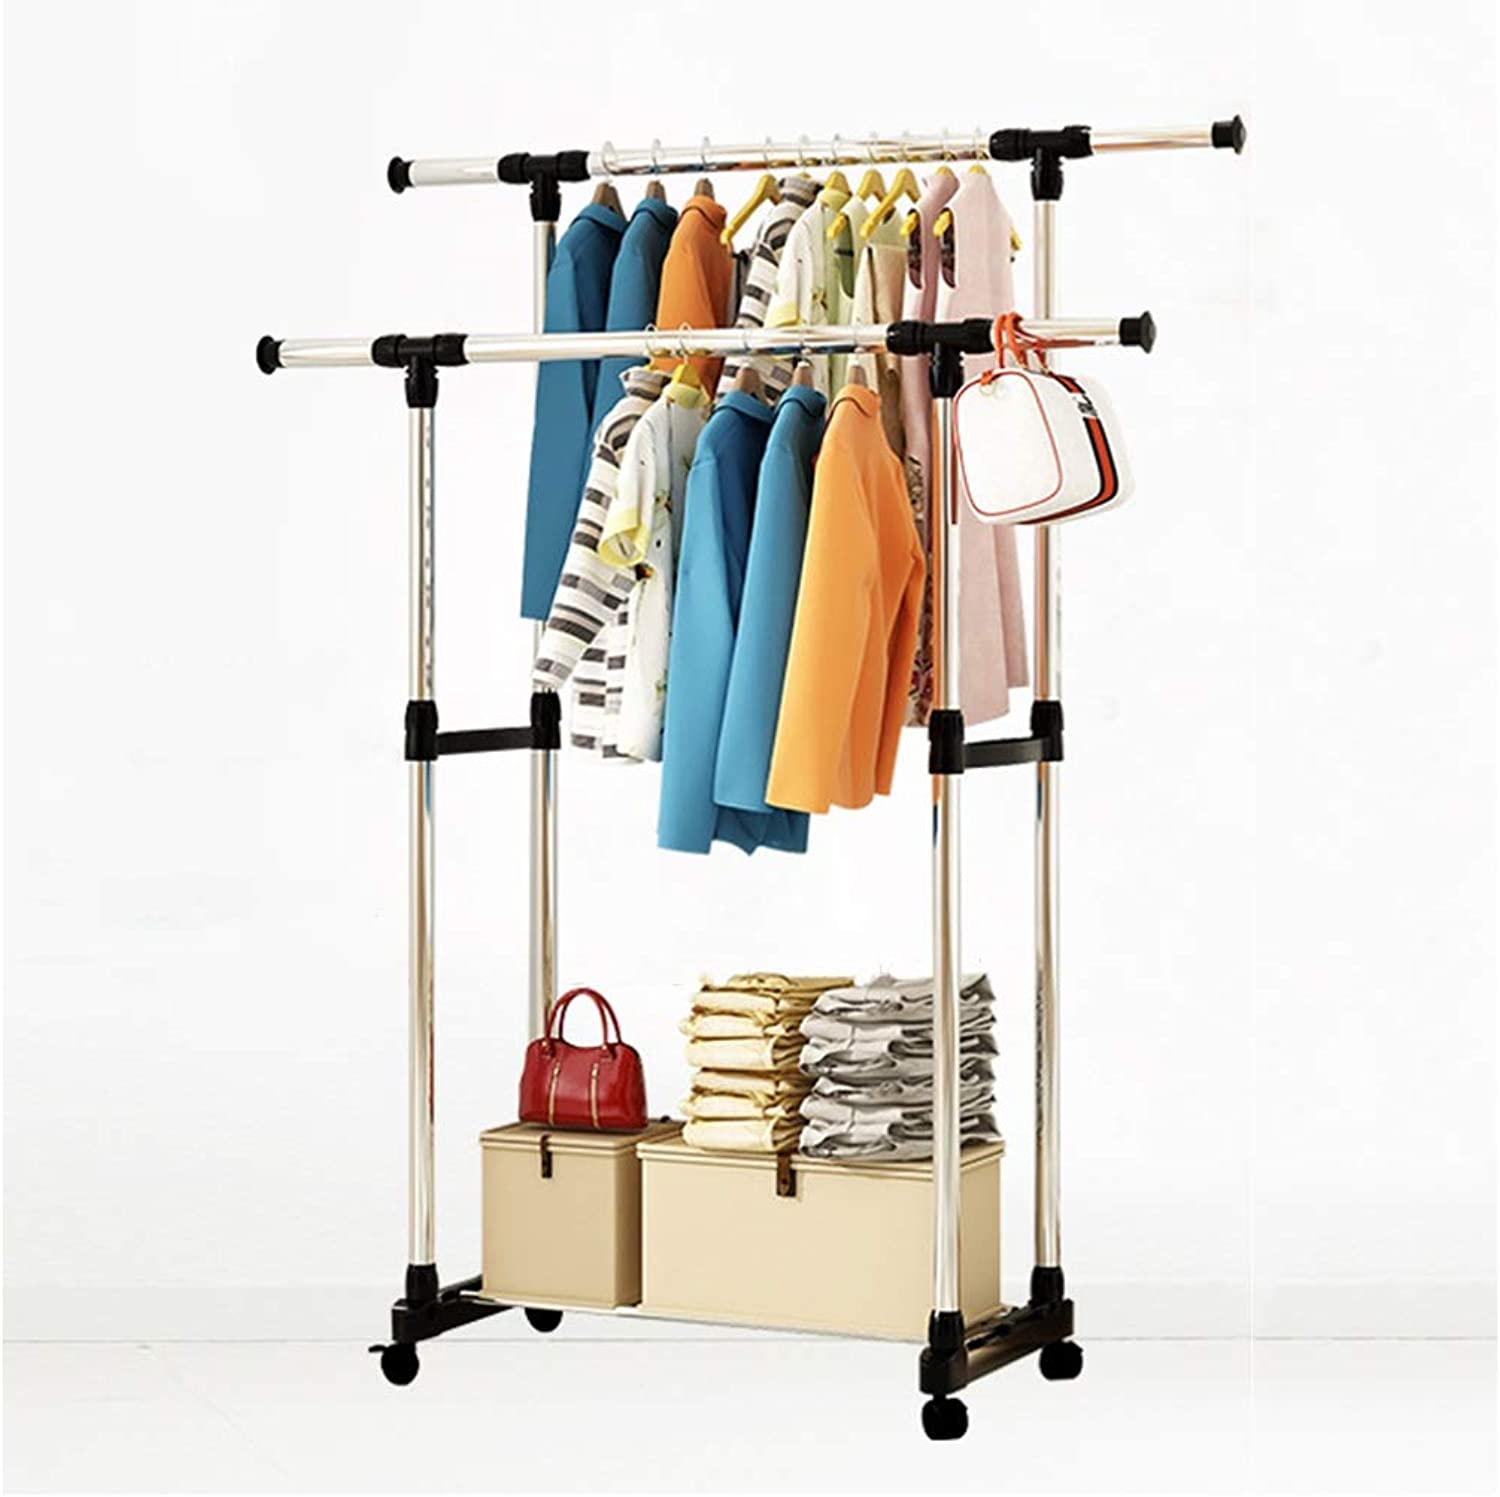 Standing Coat Racks Metal Clothes Rack Modern Hat Coat Rack Simple Coat Stand Clothes Tree Bedroom Living Room Floor Hanger -0223